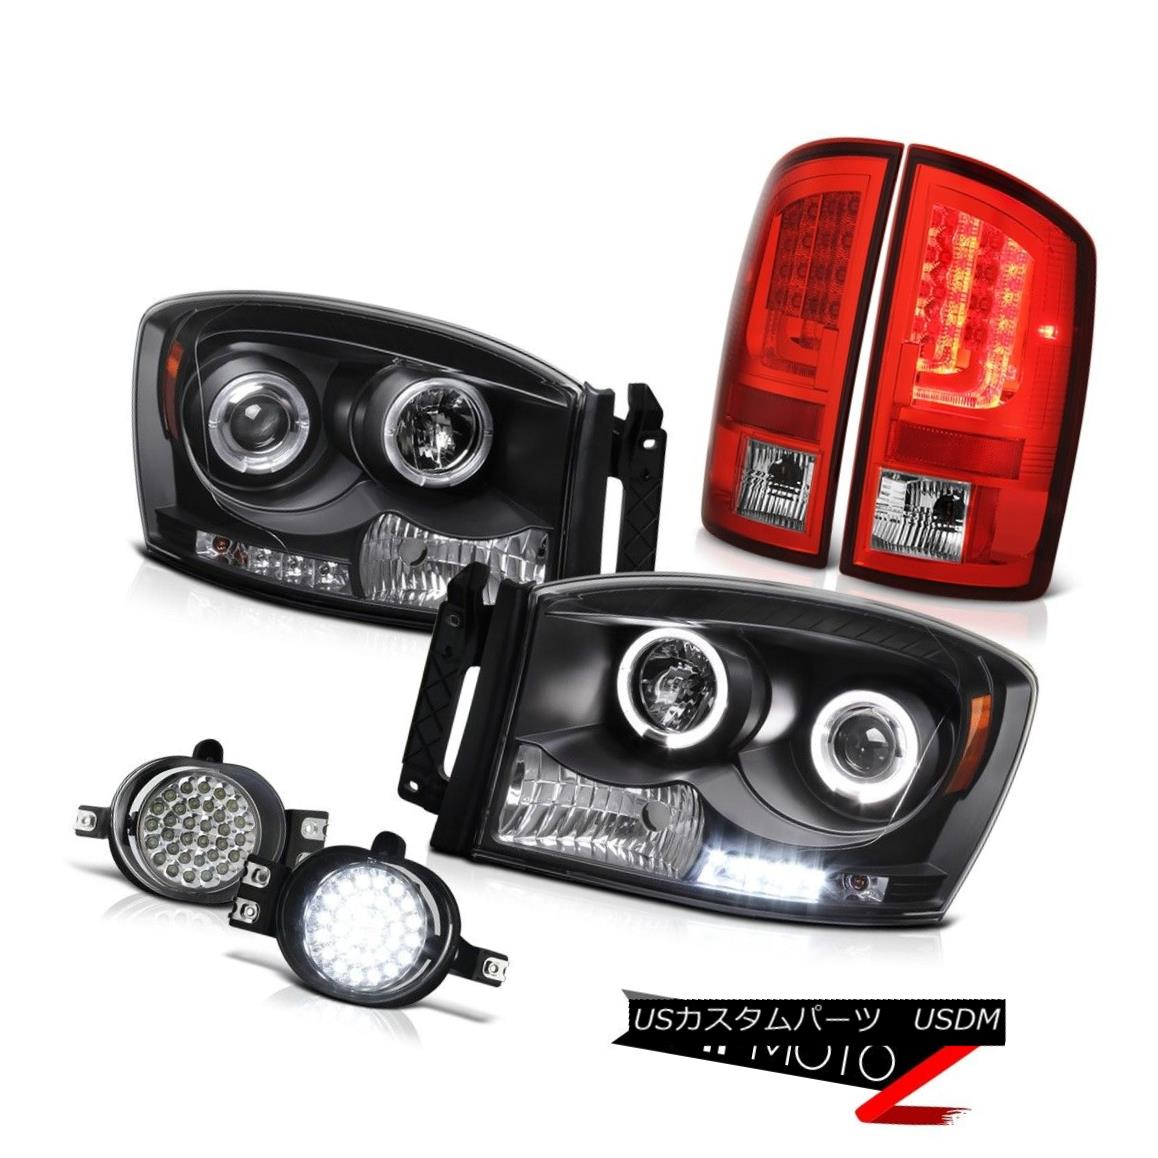 テールライト 07-08 Dodge Ram 1500 WS Tail Lamps Inky Black Headlamps CrySTal Clear Foglamps 07-08 Dodge Ram 1500 WSテールランプInky BlackヘッドランプCrySTal Clear Foglamps